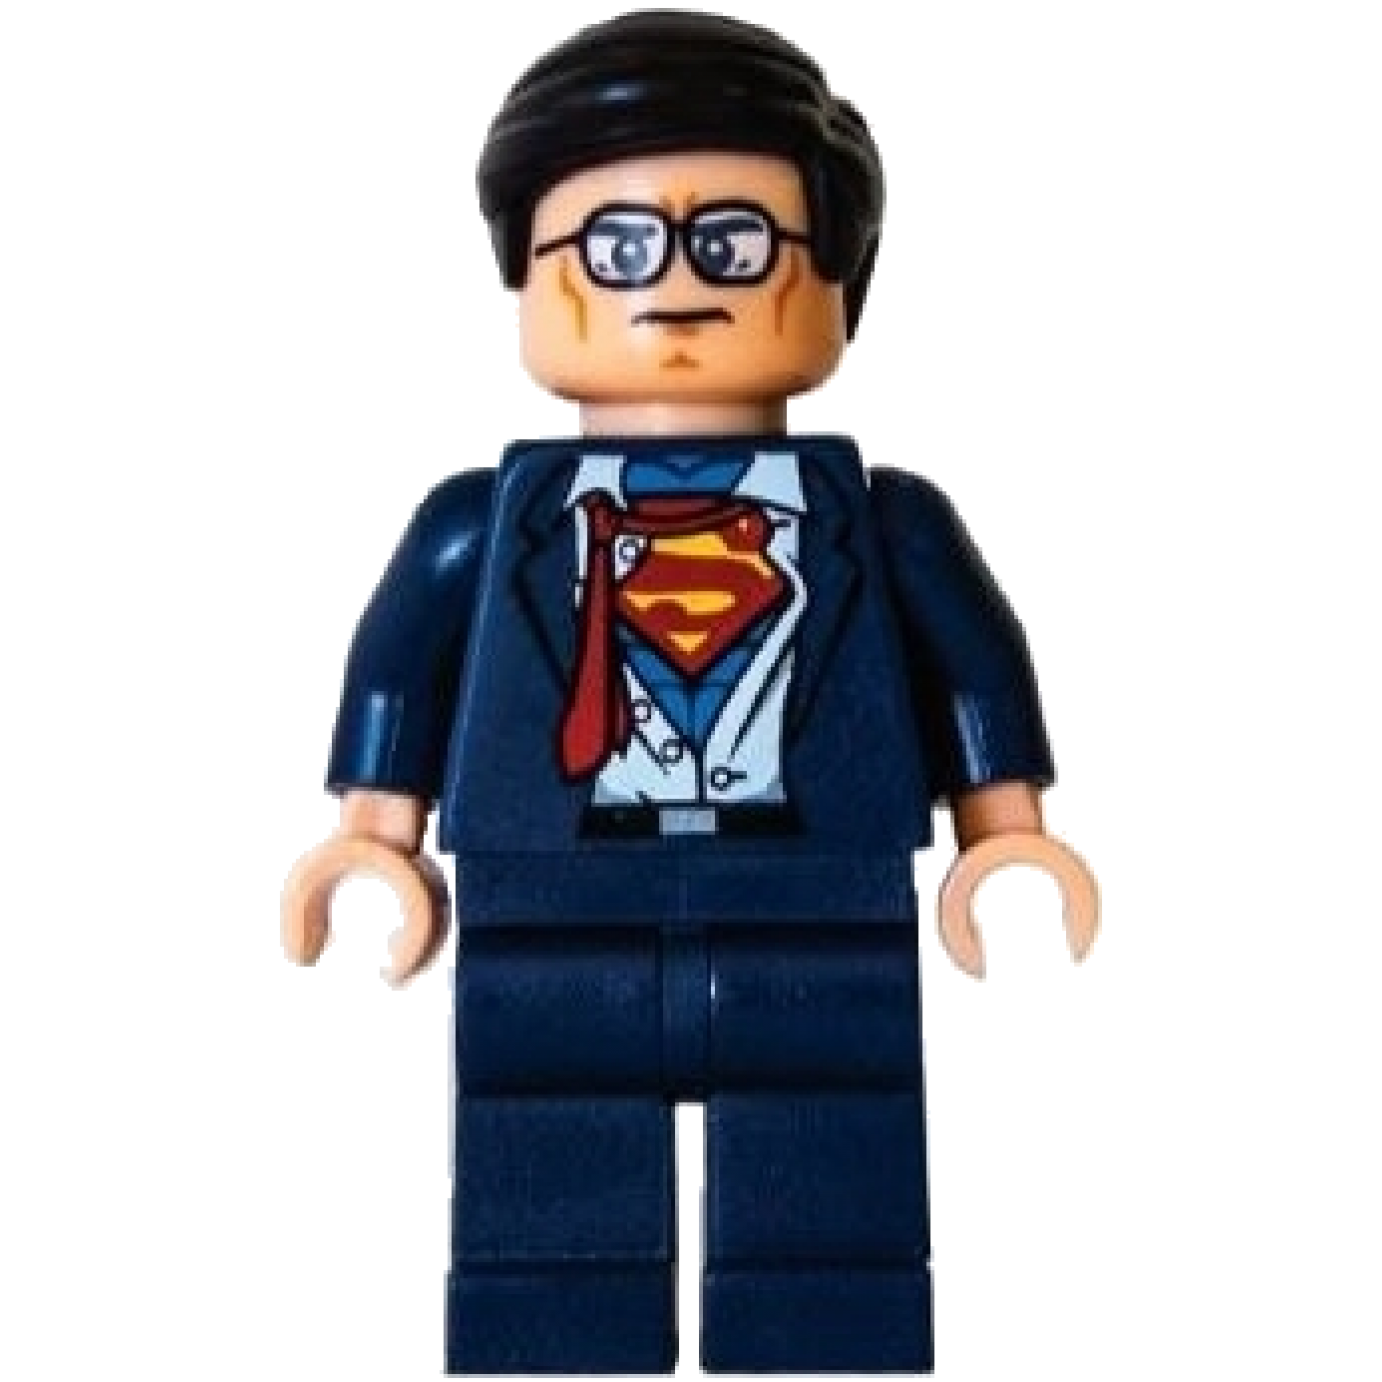 Clark Kent Limited Edition LEGO Minifigure -: www.theminifigurestore.co.uk/shop/clark-kent-limited-edition-lego...